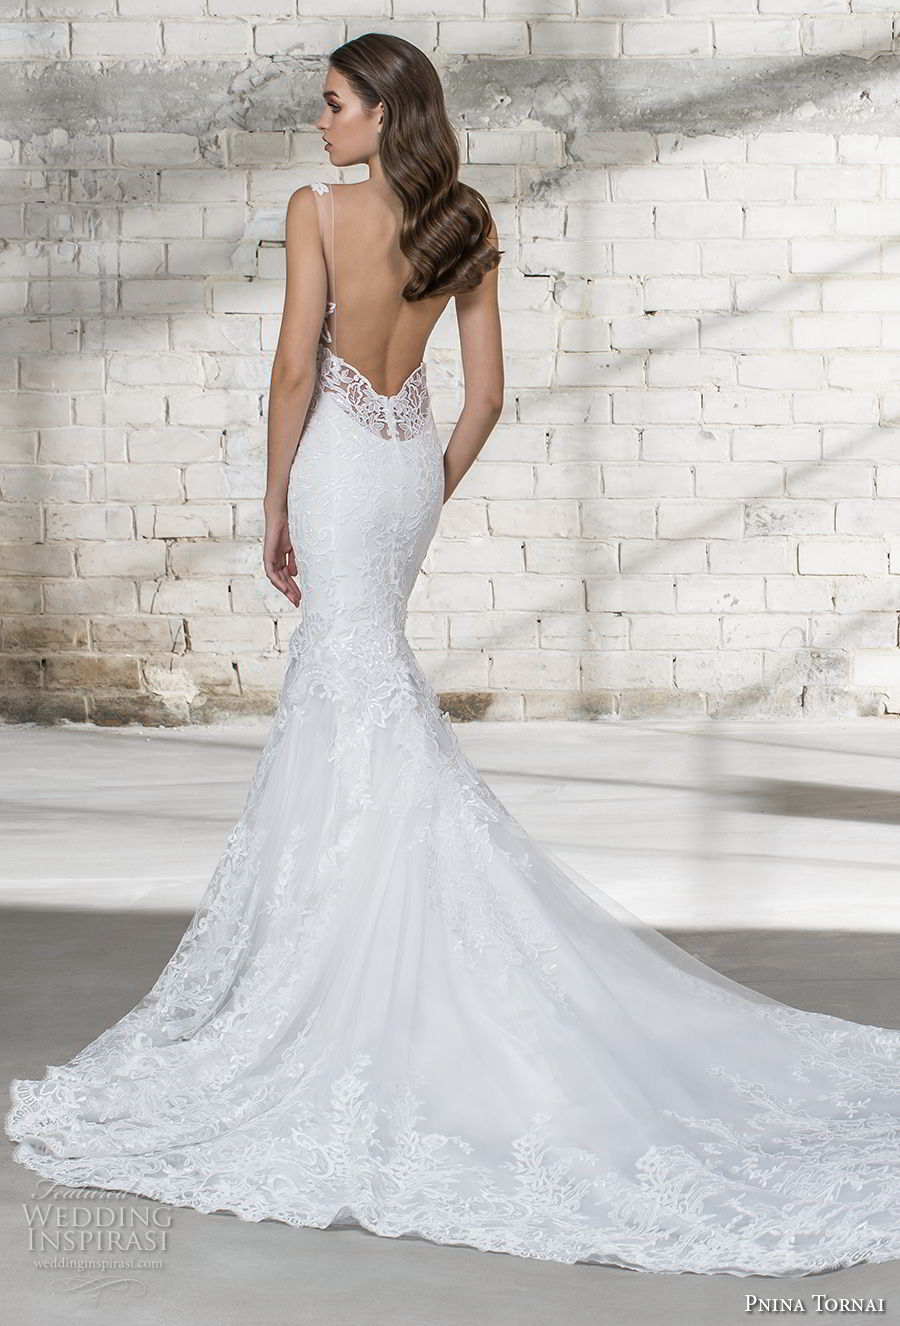 Pnina tornai 2019 wedding dresses love bridal collection pnina tornai 2019 love bridal sleeveless deep v neck full embellishment elegant mermaid wedding dress open junglespirit Gallery